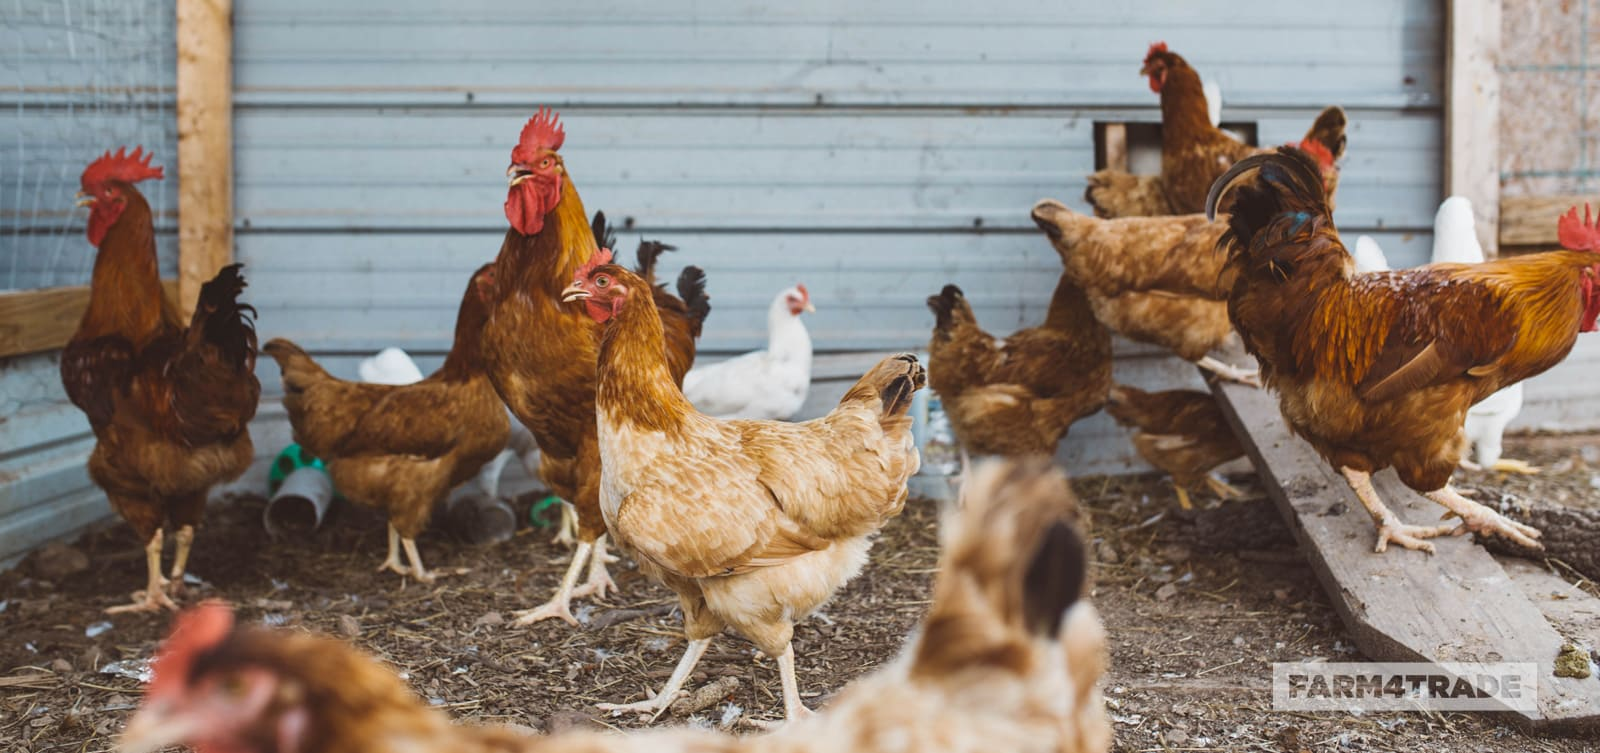 Farm4Trade-poultry-Farming-an-easy-and-remunerative-choice